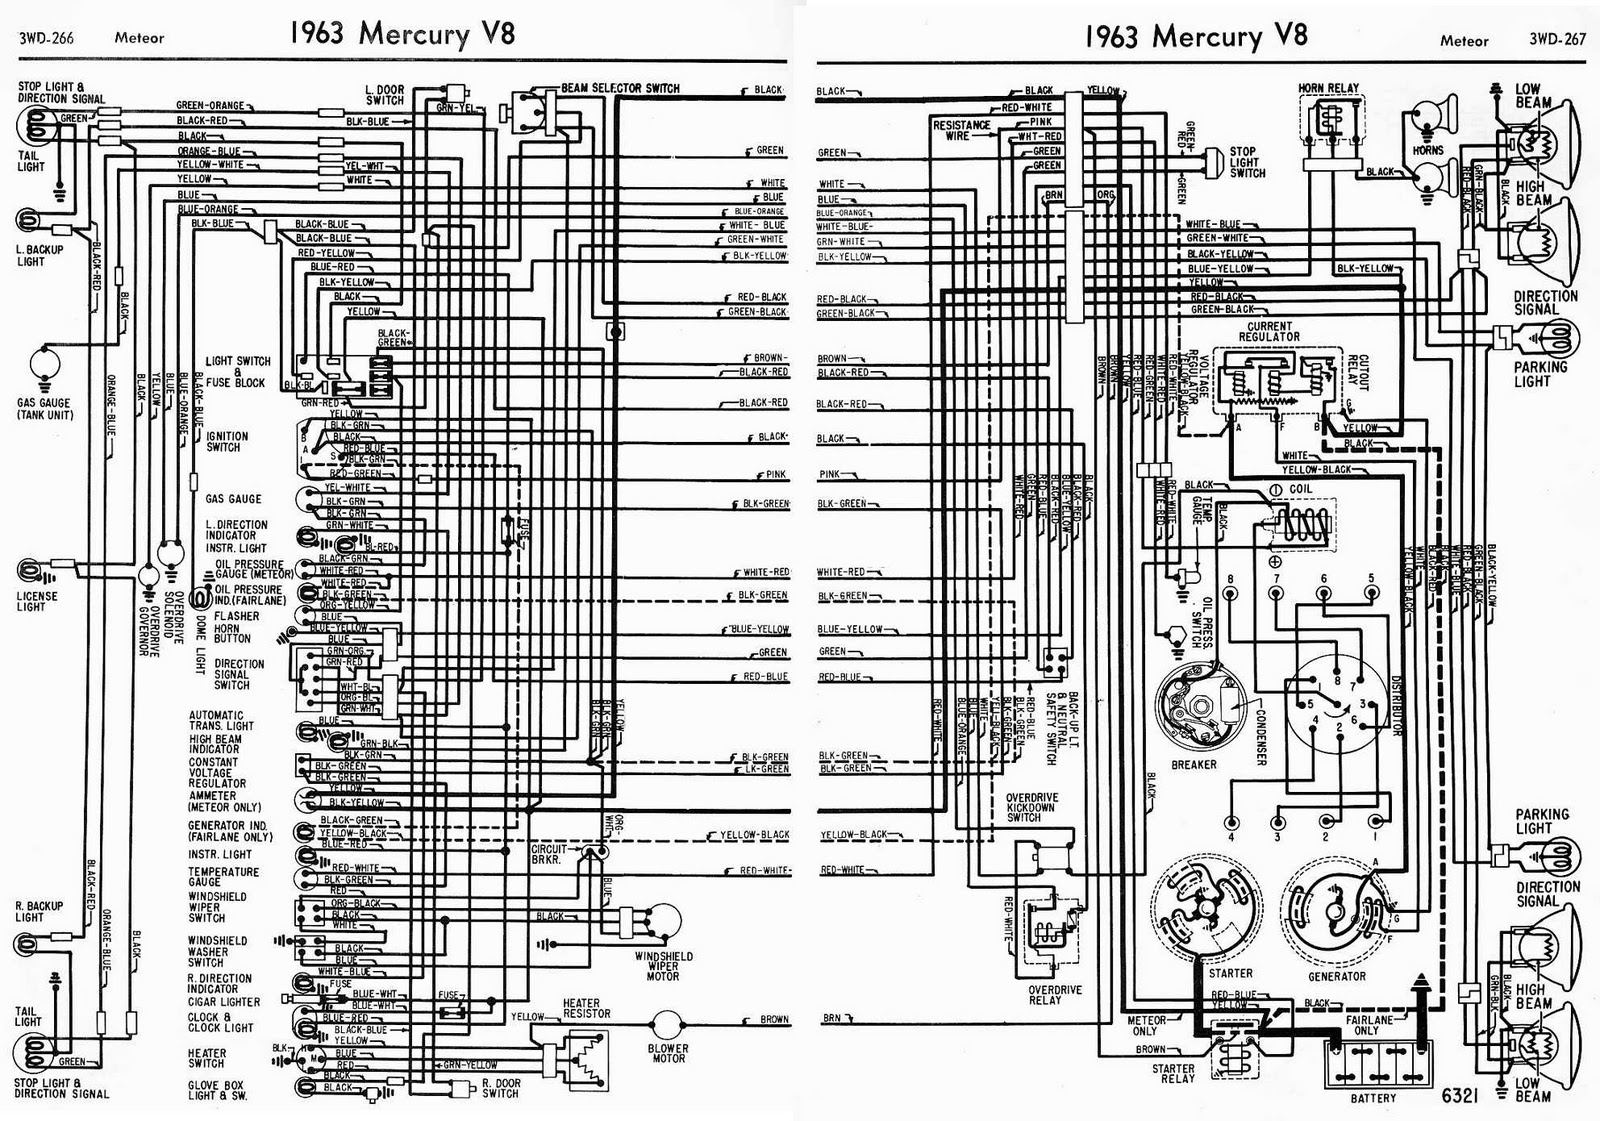 1963+Mercury+V8+Meteor+Complete+Wiring+Diagram wiring diagrams 911 1963 ford wiring diagram at crackthecode.co